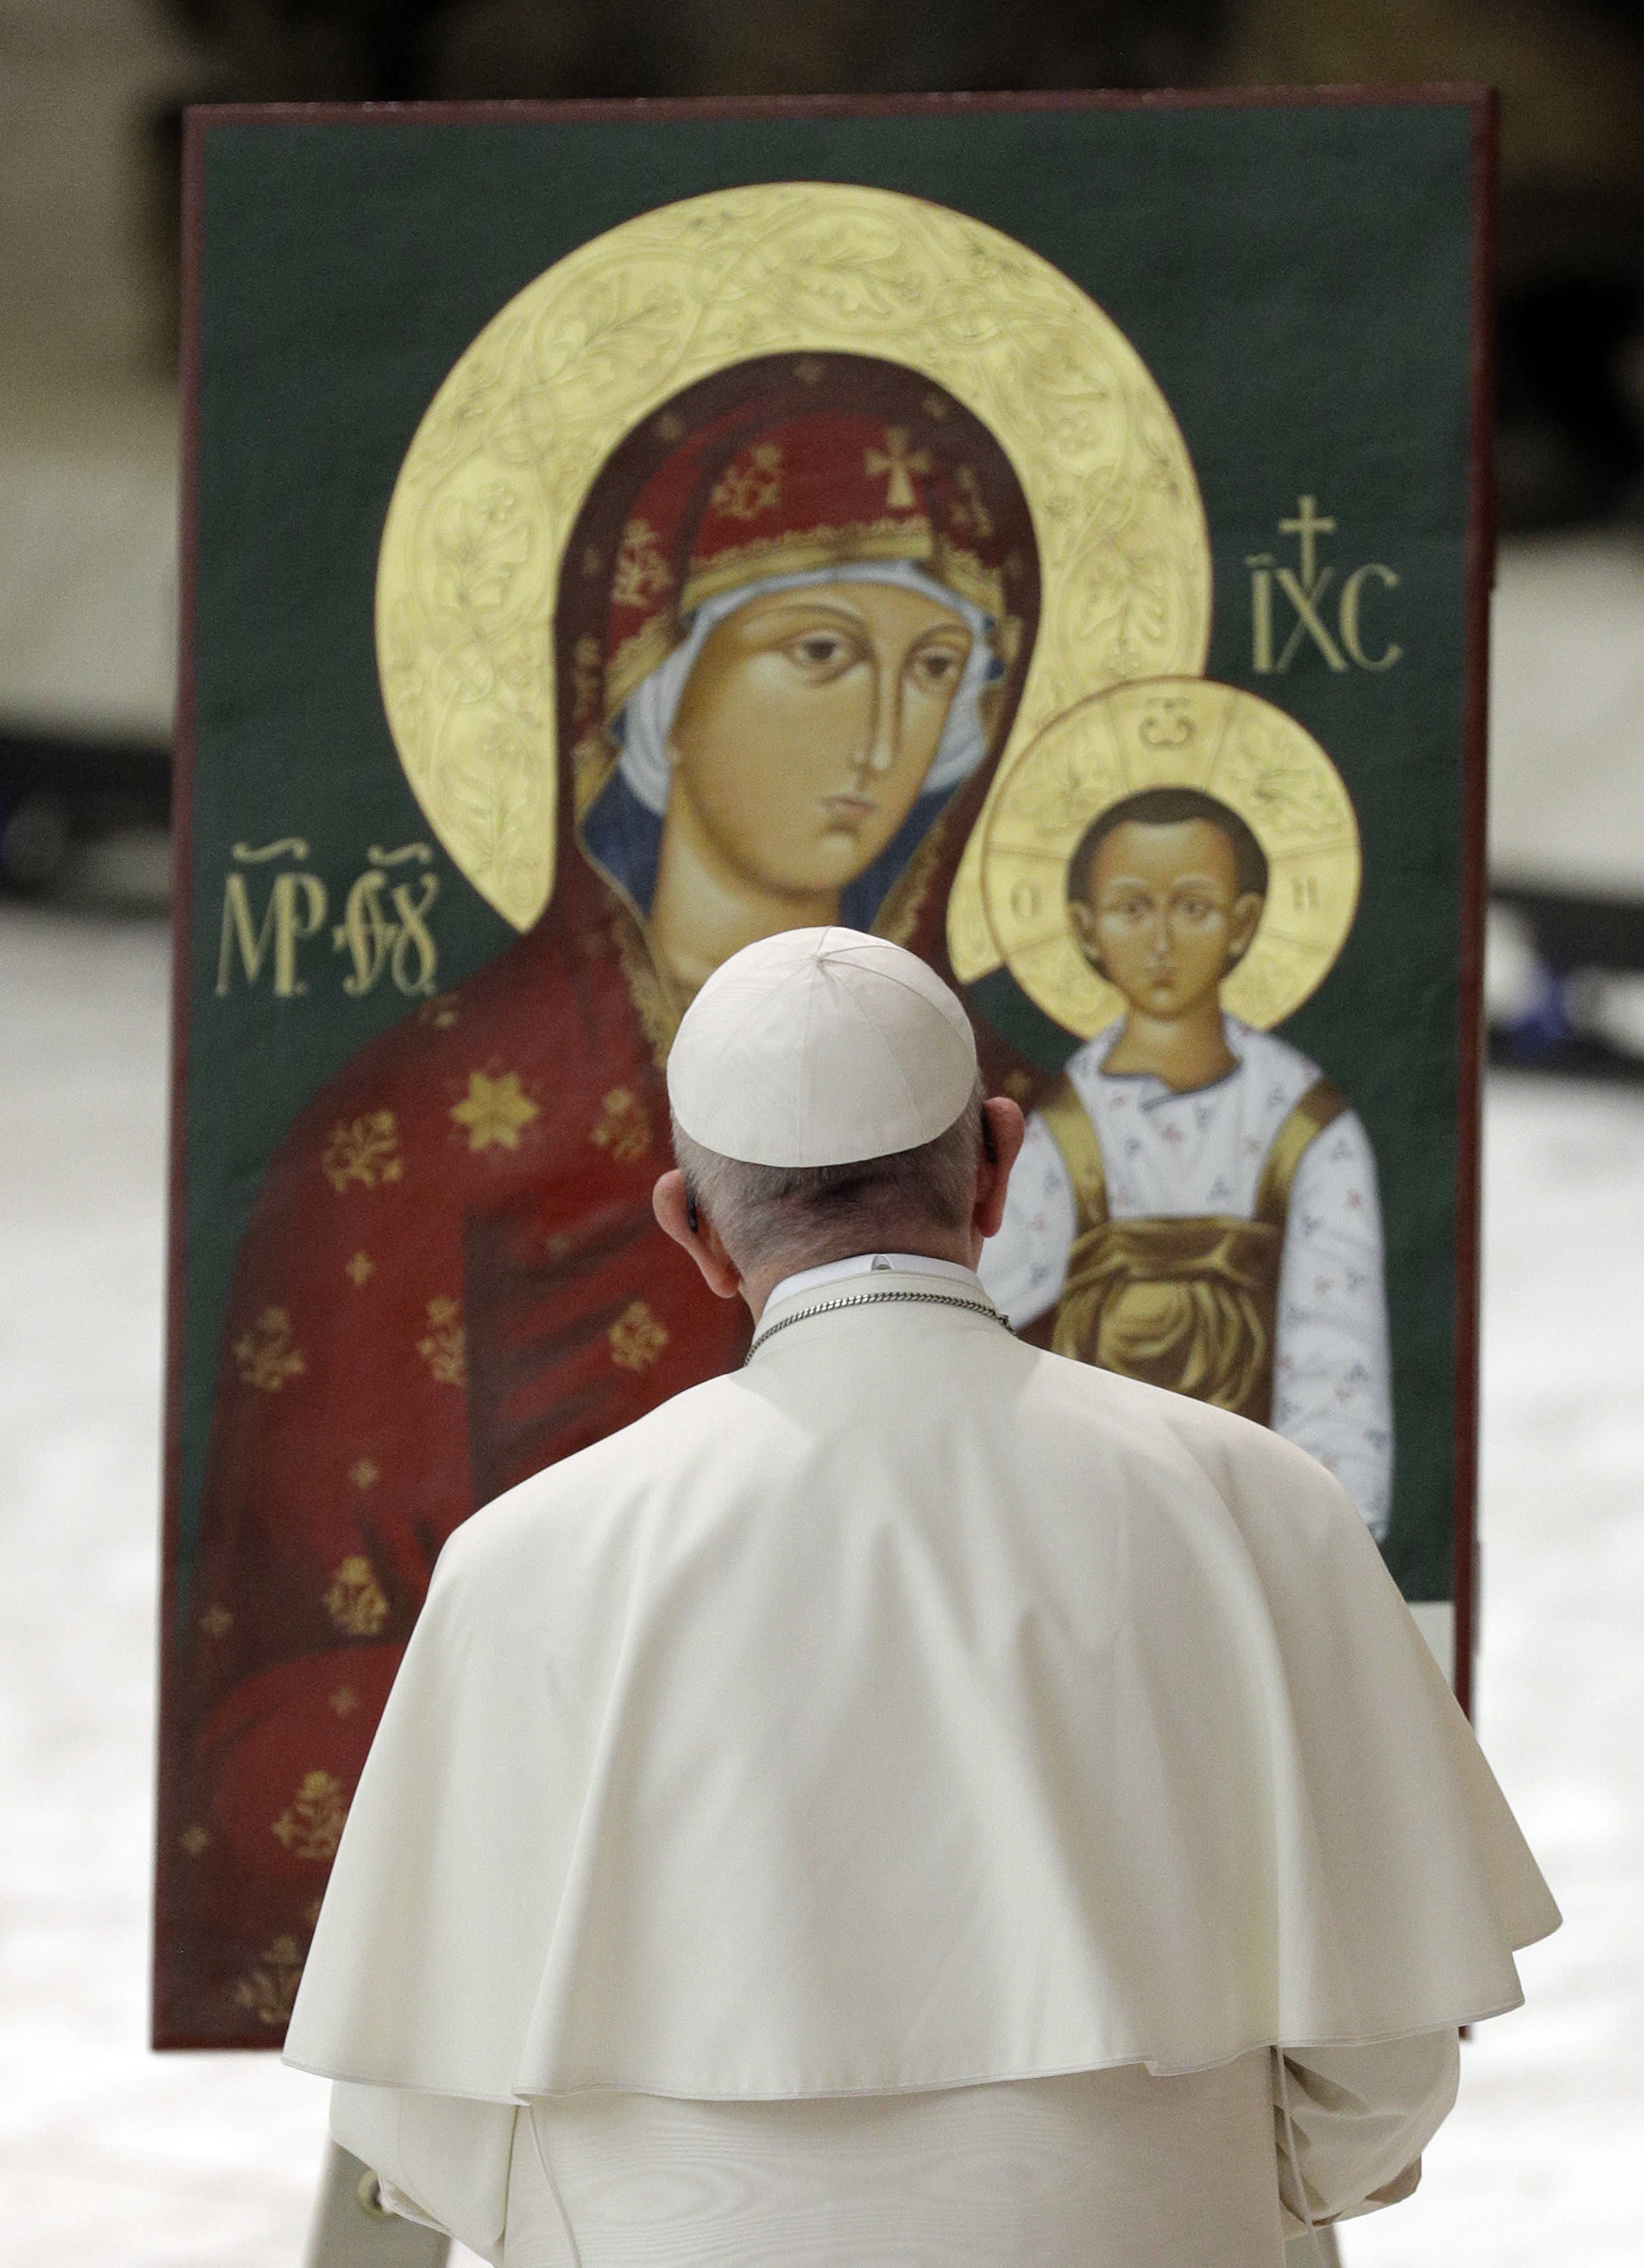 Pope Francis prays in front of an icon of the Virgin and baby Jesus during an audience with pilgrims from Slovakia in the Paul VI Hall at the Vatican, Saturday, Oct. 6, 2018. (AP Photo/Gregorio Borgia)